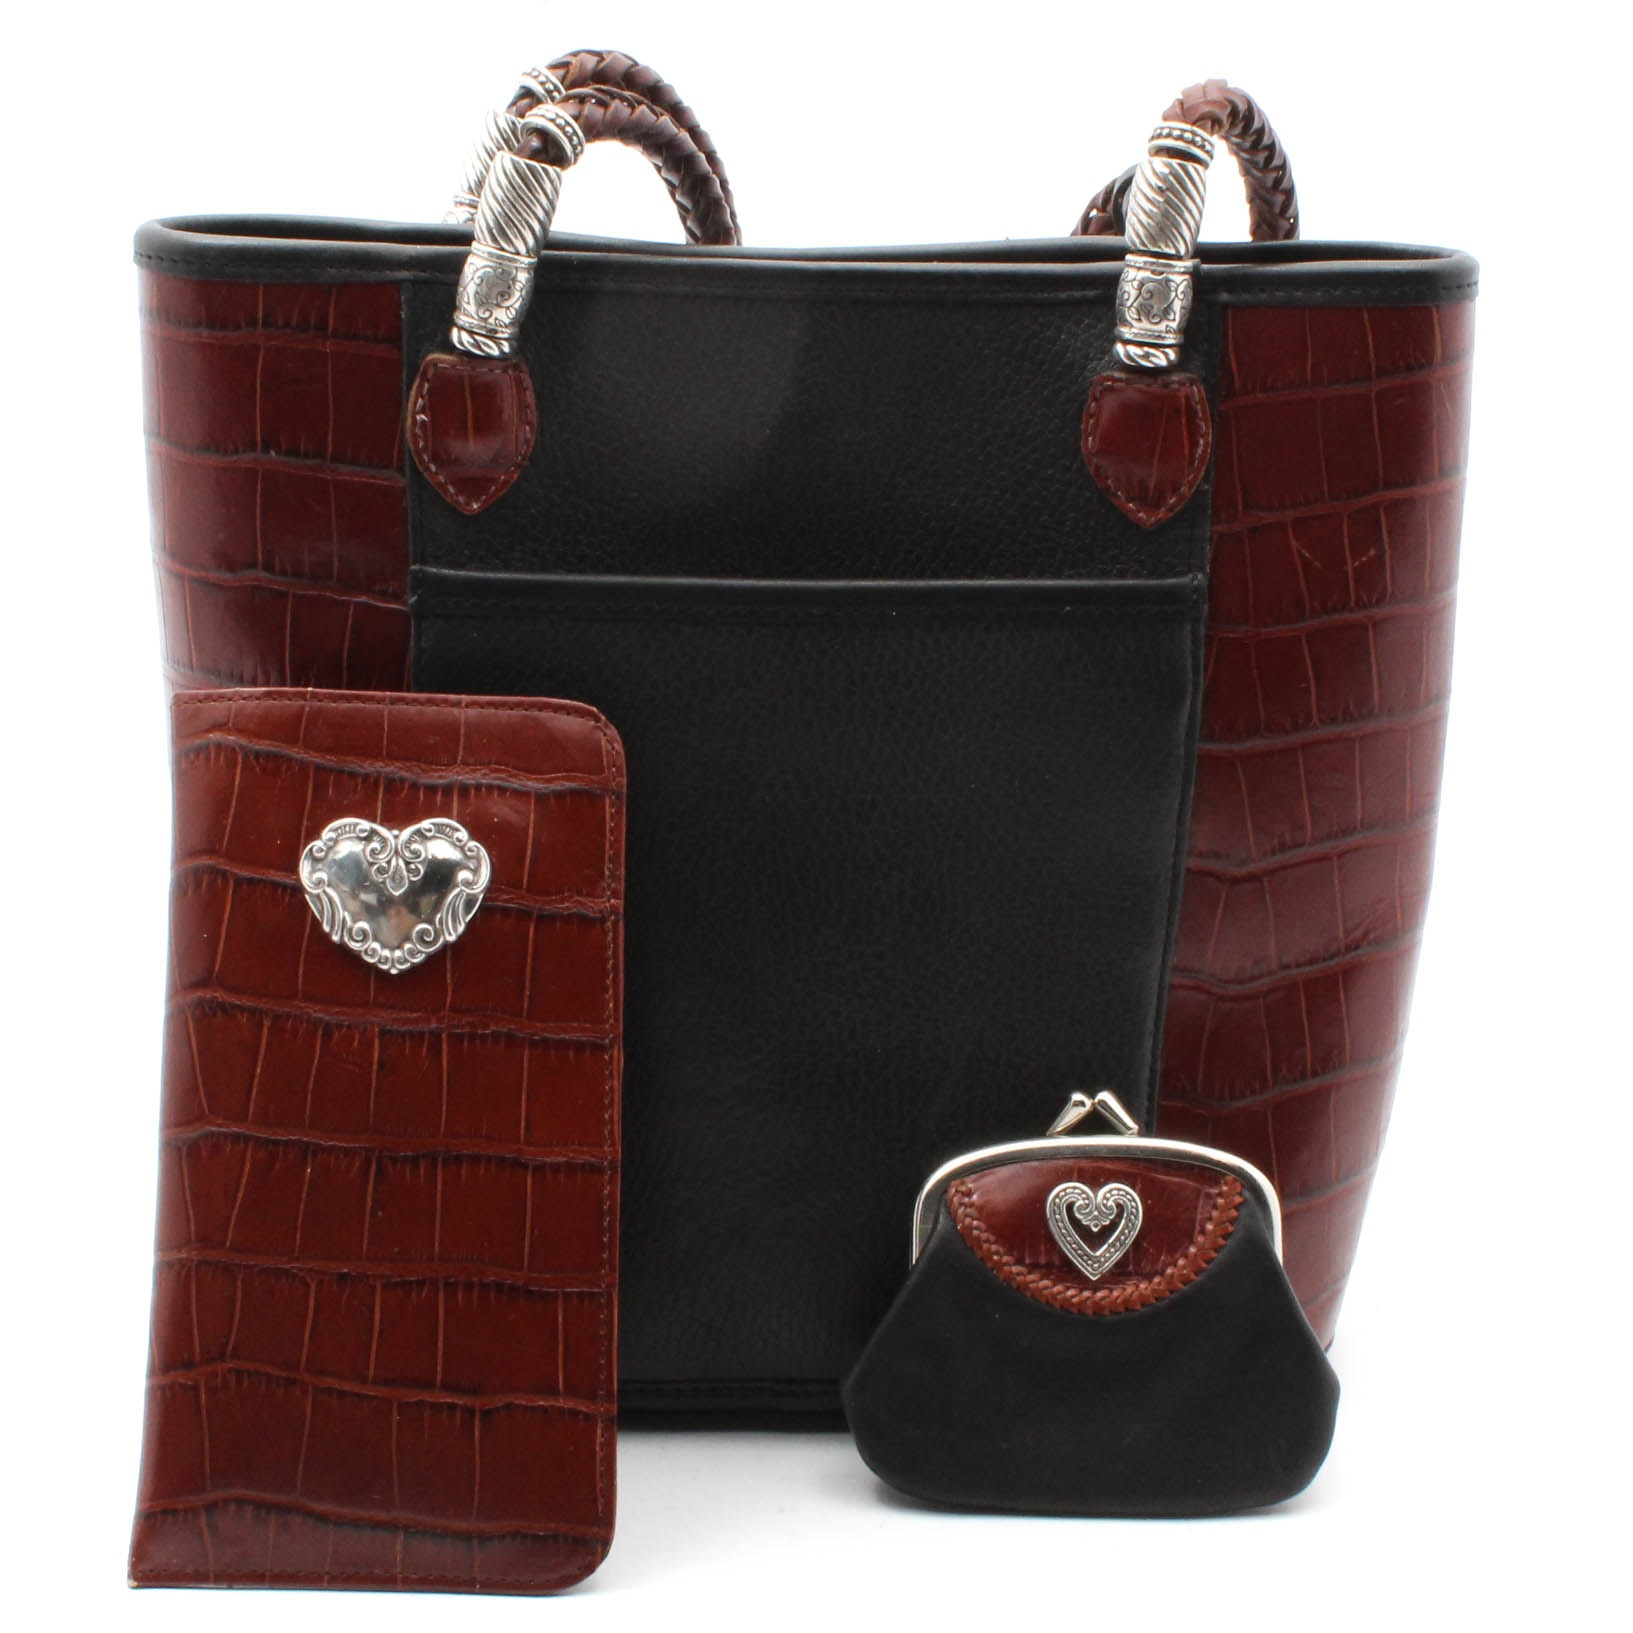 Brighton Leather Shoulder Bag with Accessories